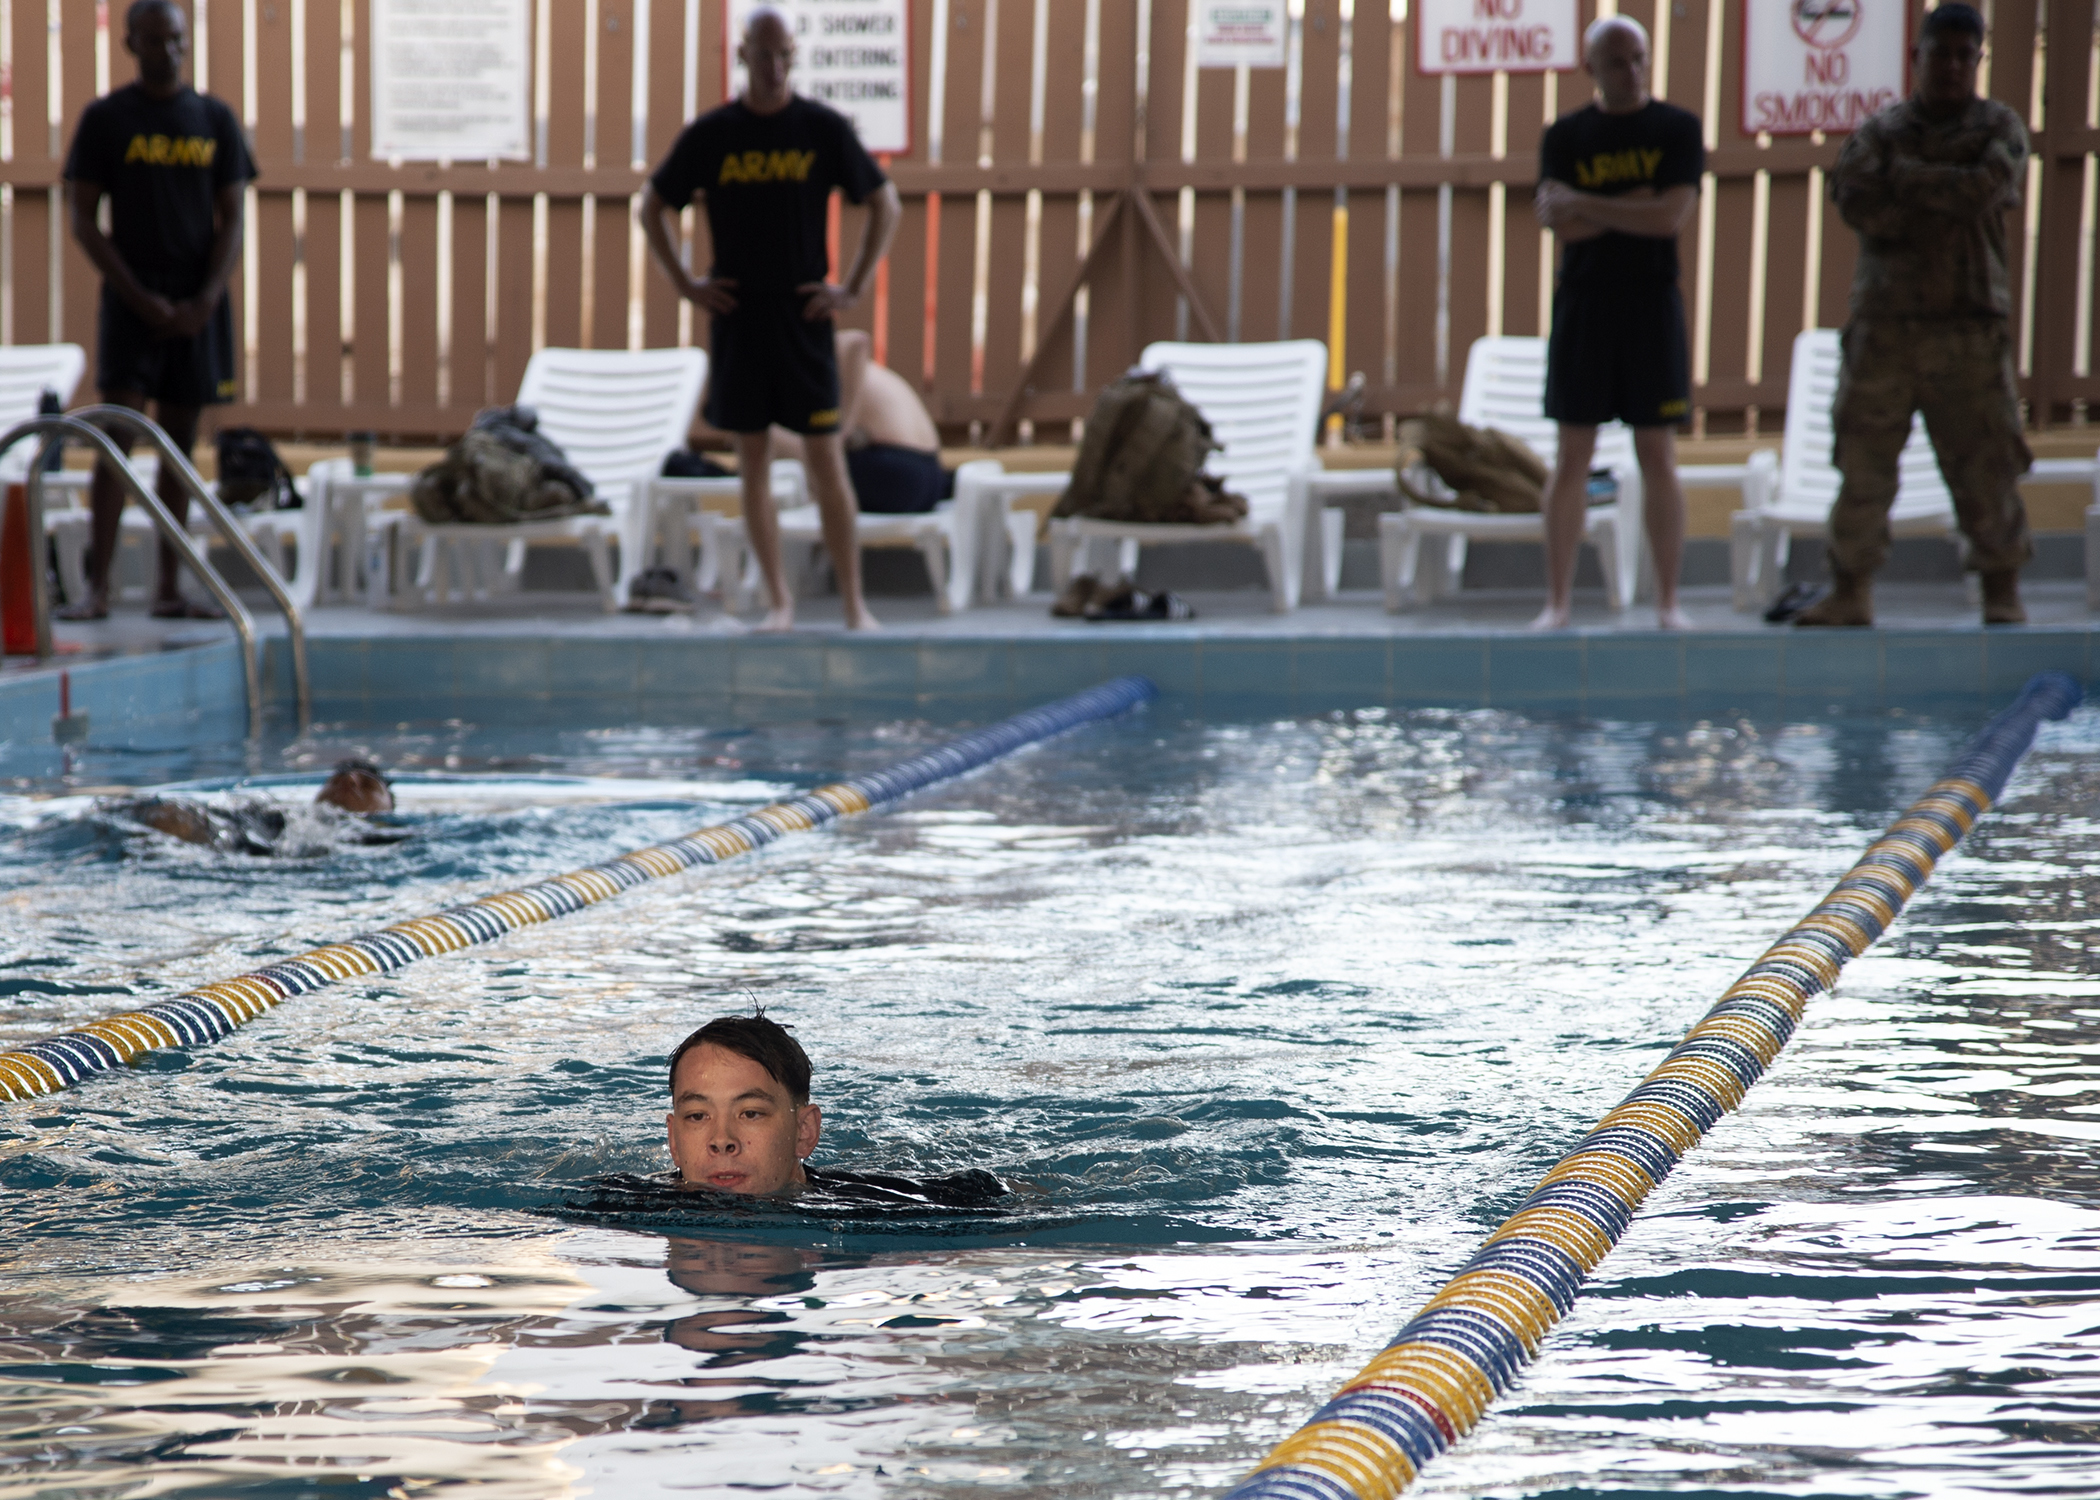 U.S. Army Pfc. Tristan Seaton, Bravo Company, 1-26 Infantry, 101st Airborne, assigned to Combined Joint Task Force-Horn of Africa (CJTF-HOA), Djibouti, competes in a swim competition for the German Armed Forces Badge (GAFB) for Military Proficiency in Djibouti, Jan. 16, 2019. The GAFB is awarded to and worn by German service members of all ranks. Allied service members may also be awarded the badge, subject to their nations' uniform regulations. (U.S. Navy photo by Mass Communication Specialist 1st Class Nick Scott)